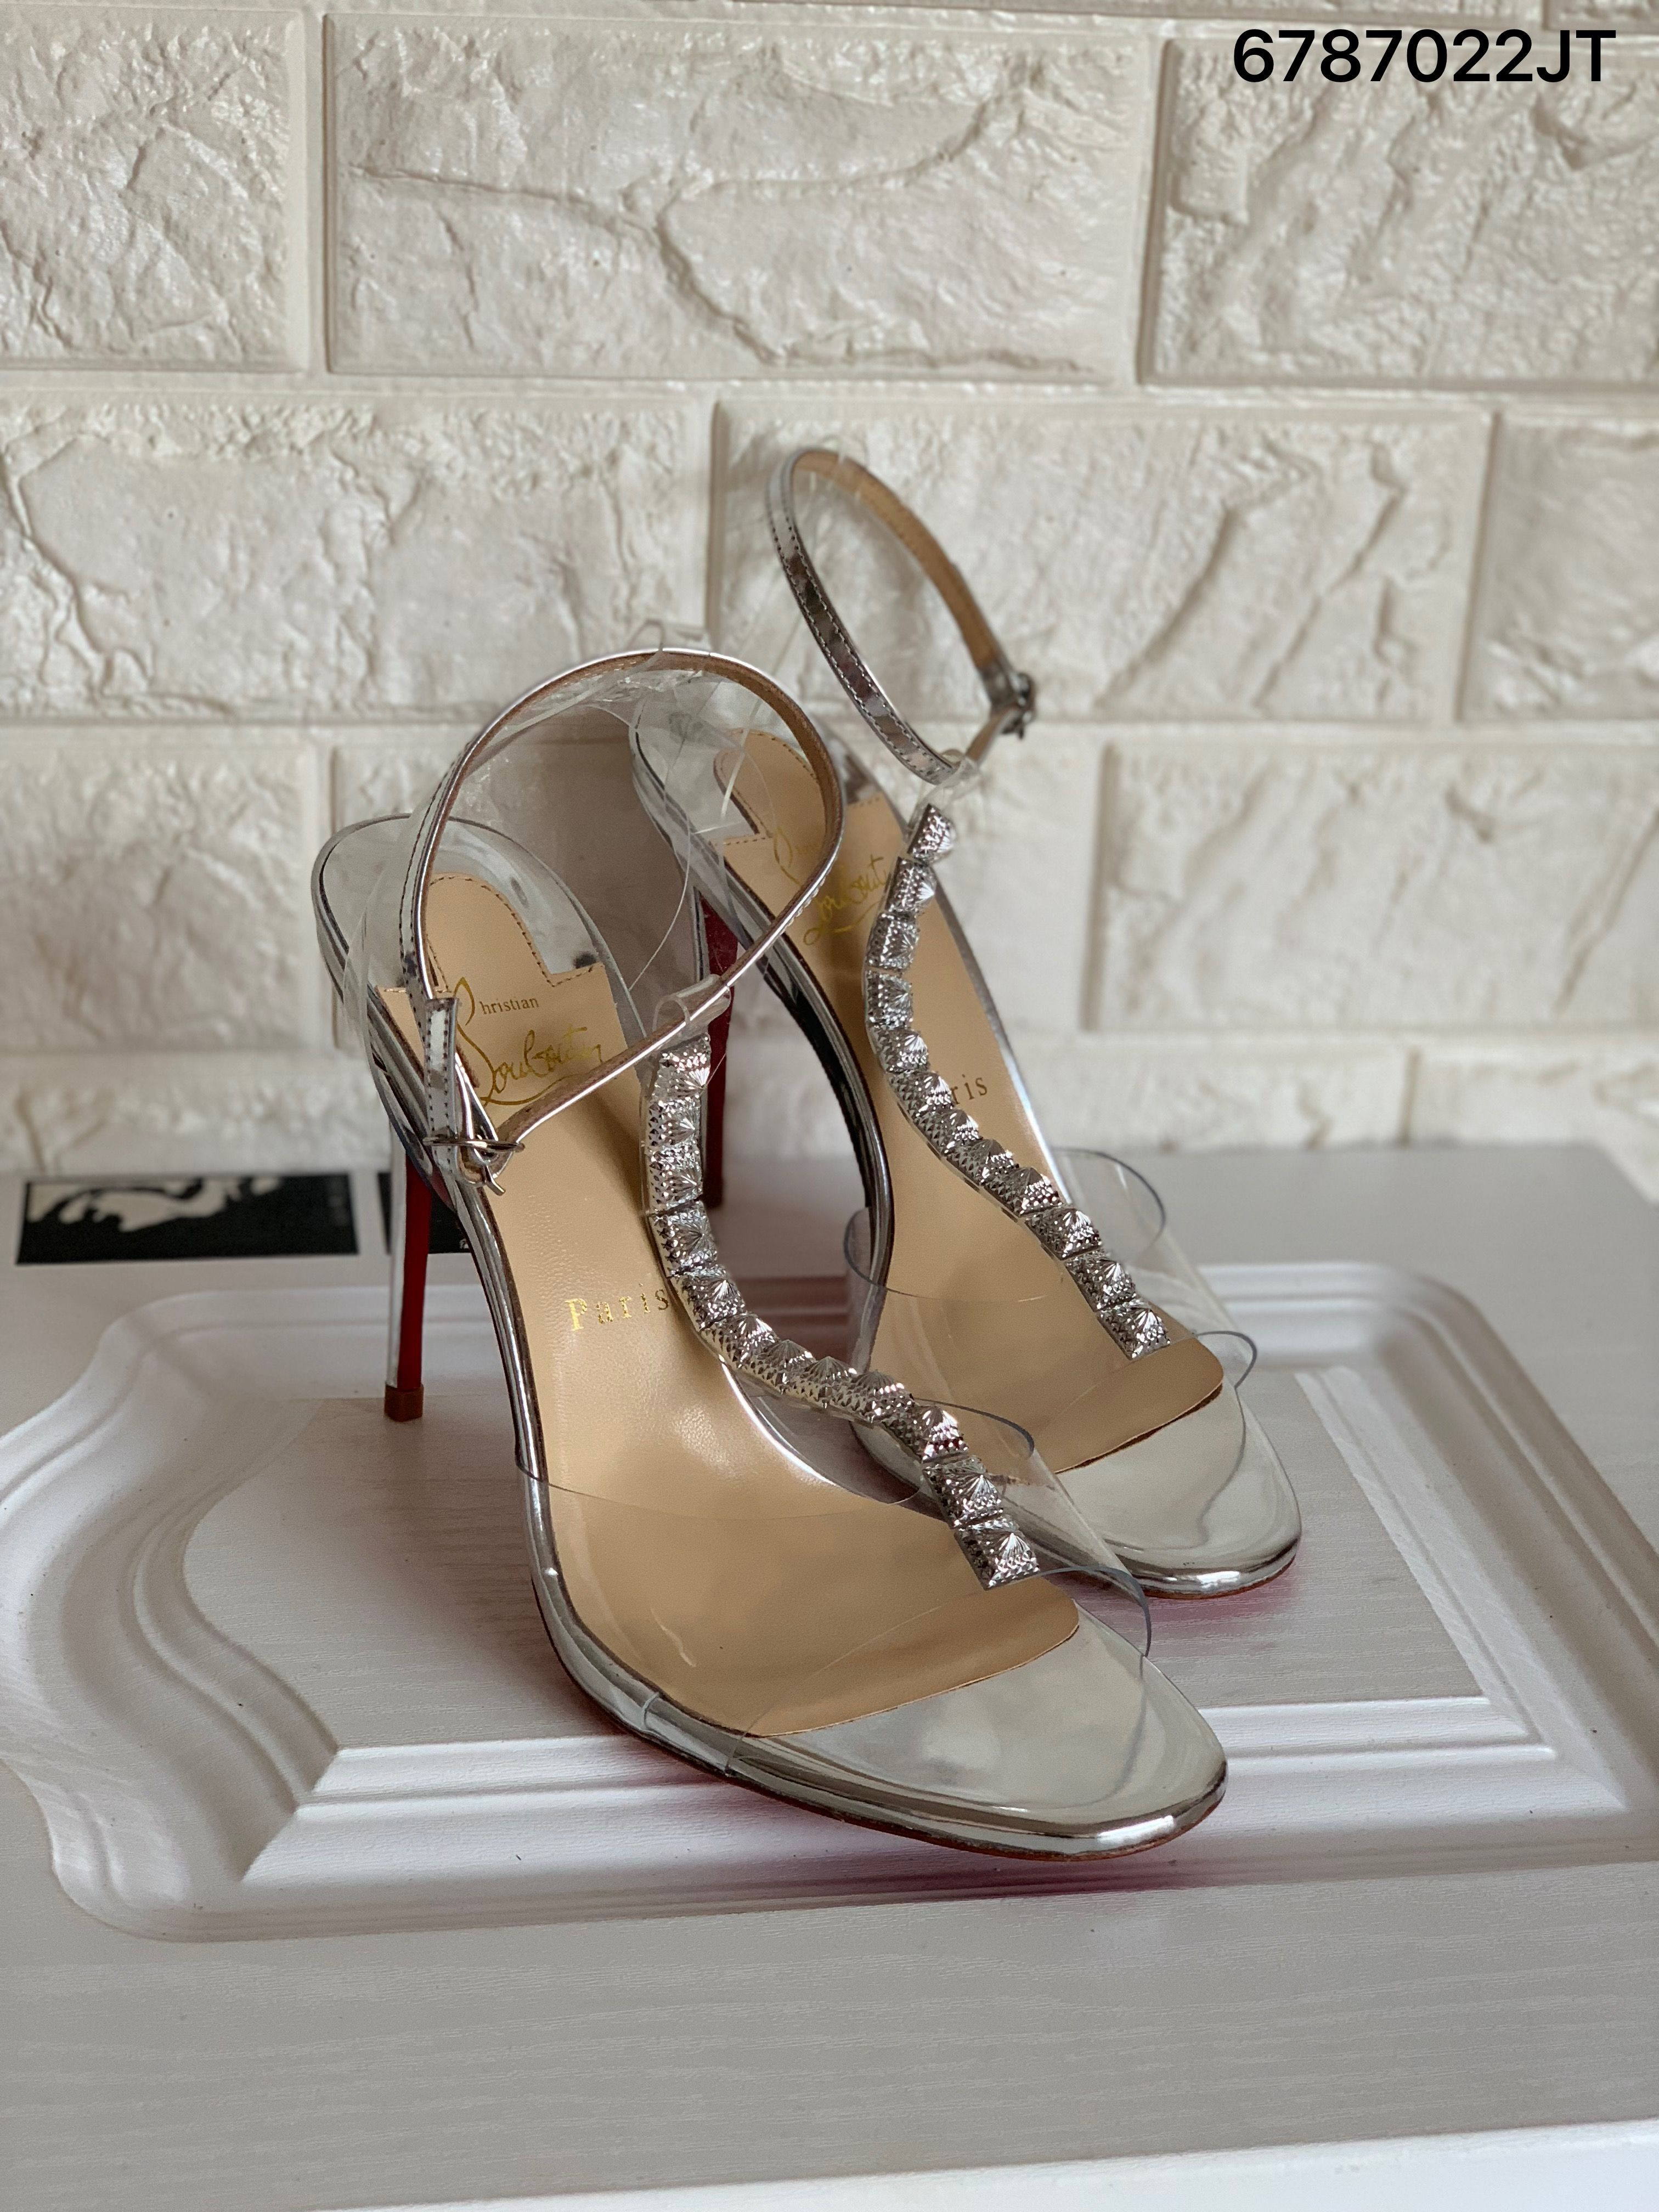 Christian louboutin CL red bottom high